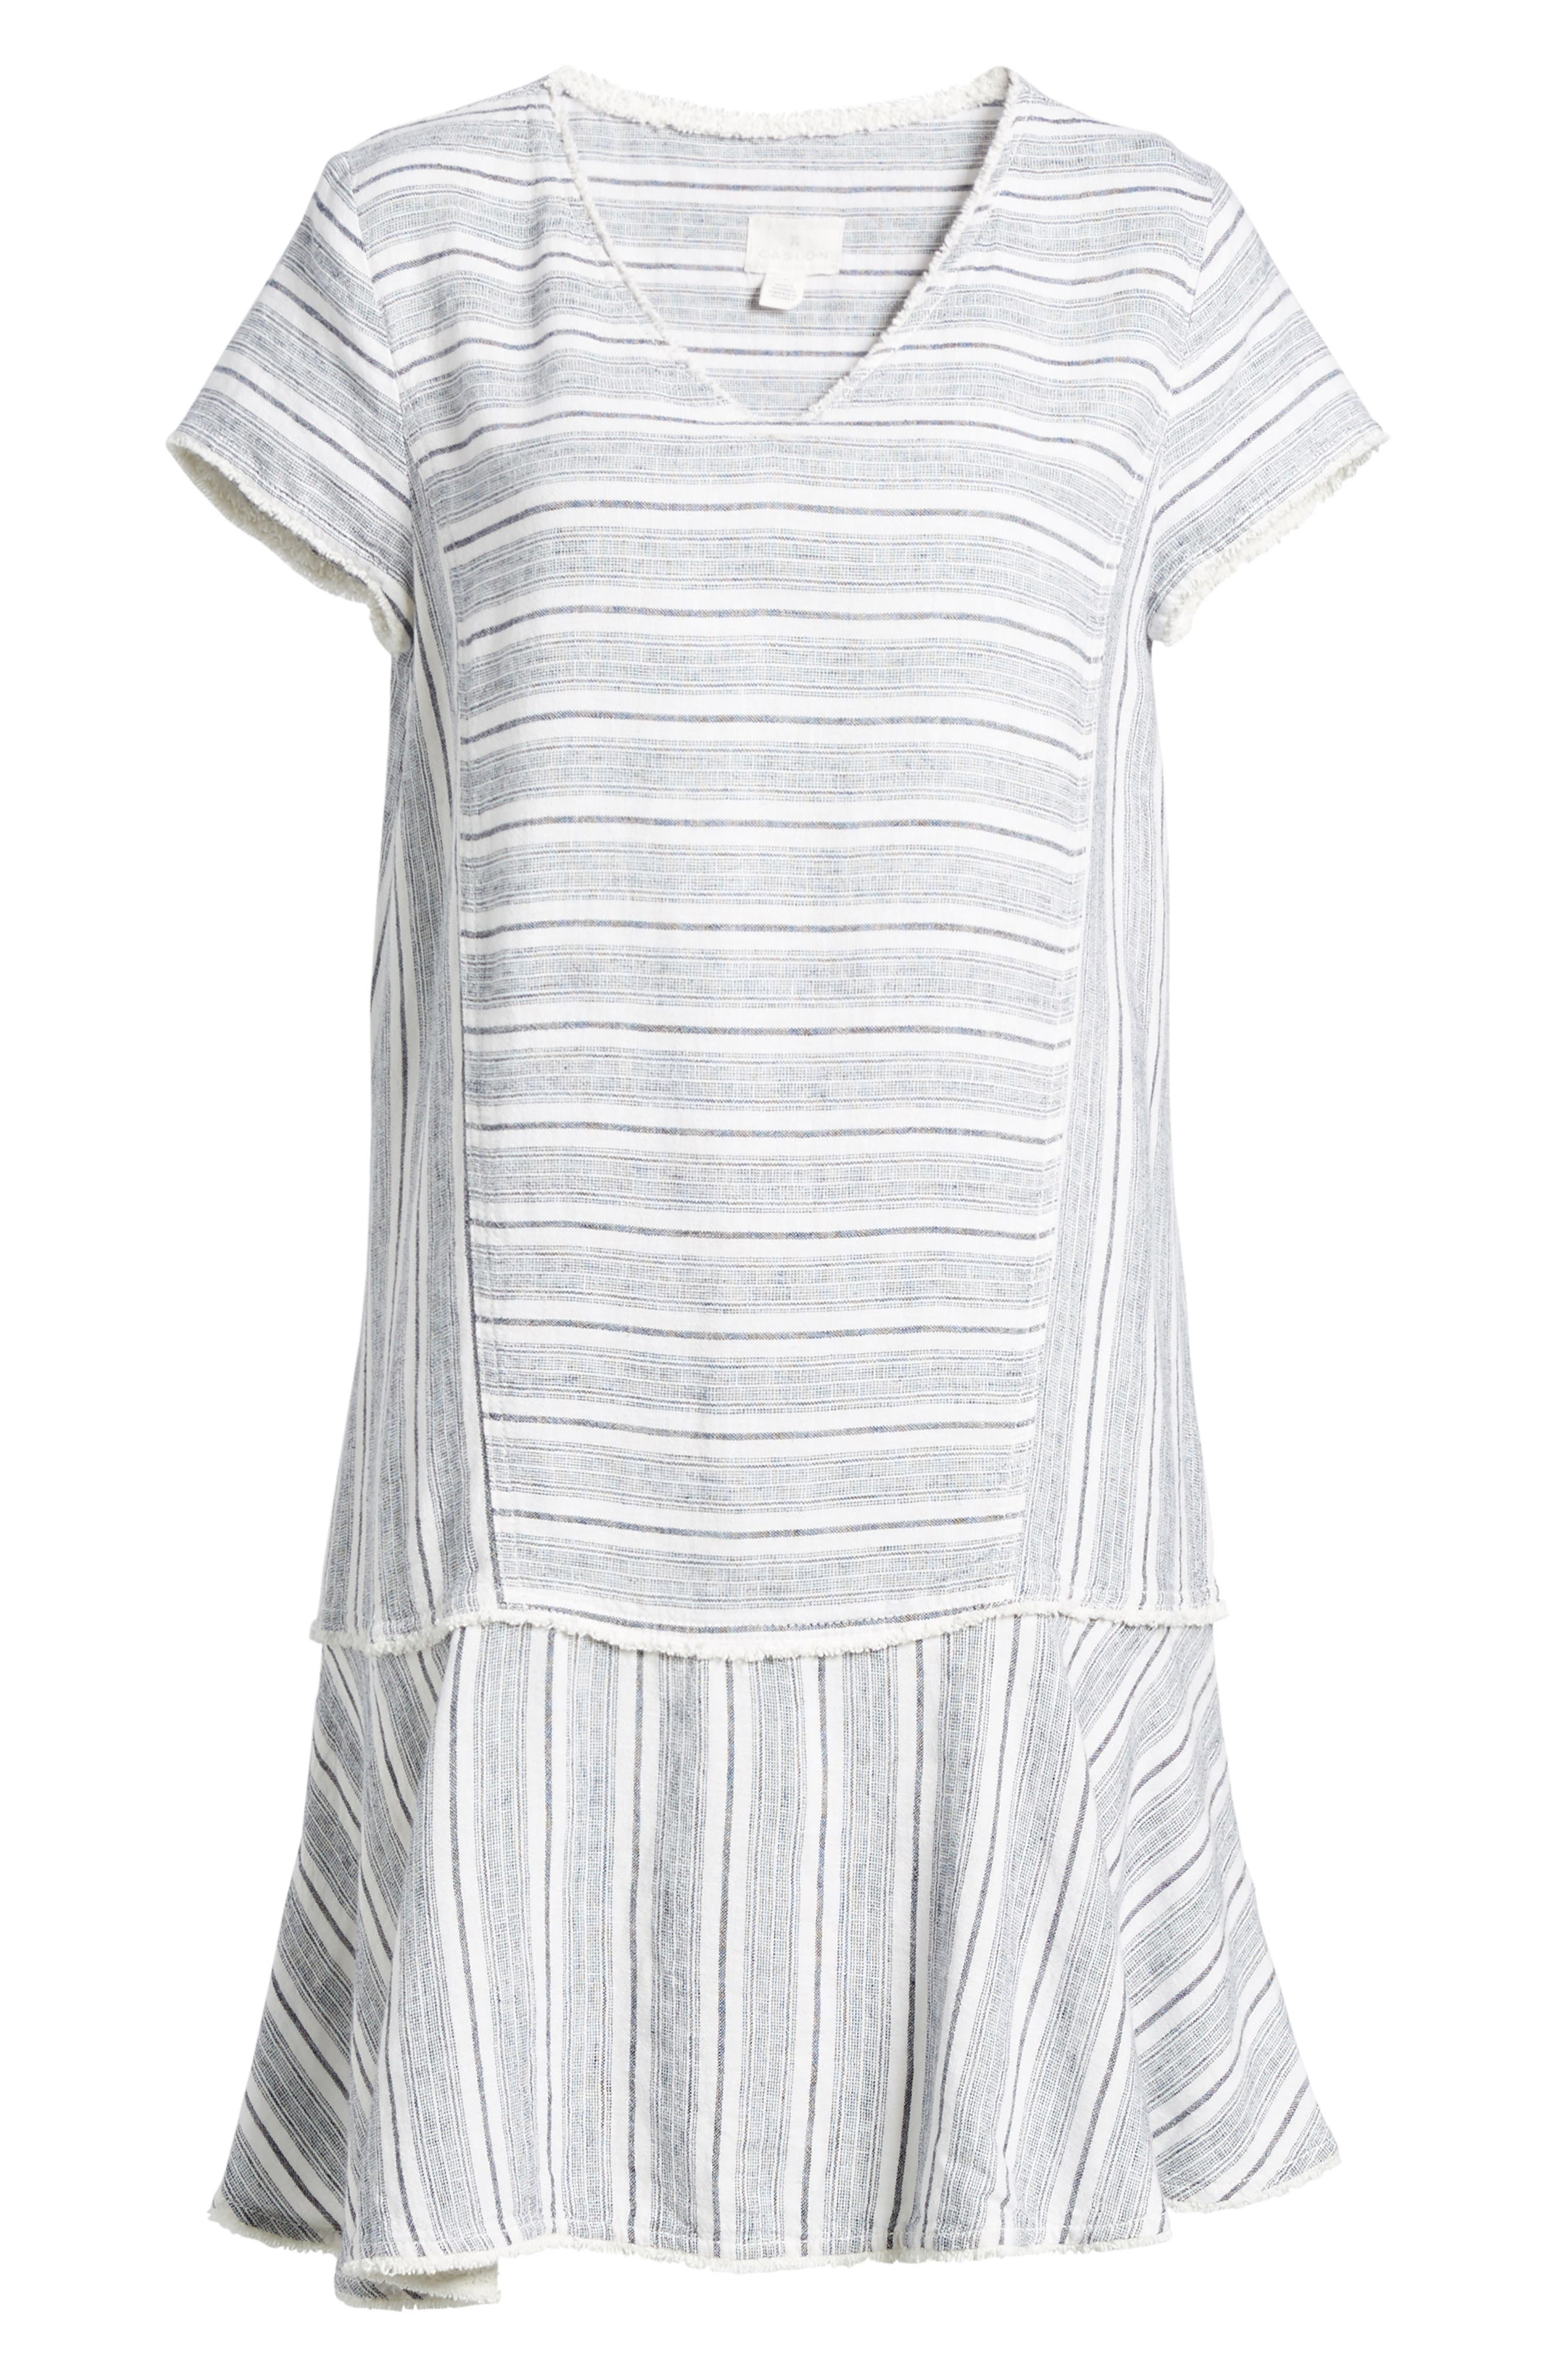 Linen Blend Stripe Dress,                             Alternate thumbnail 7, color,                             900